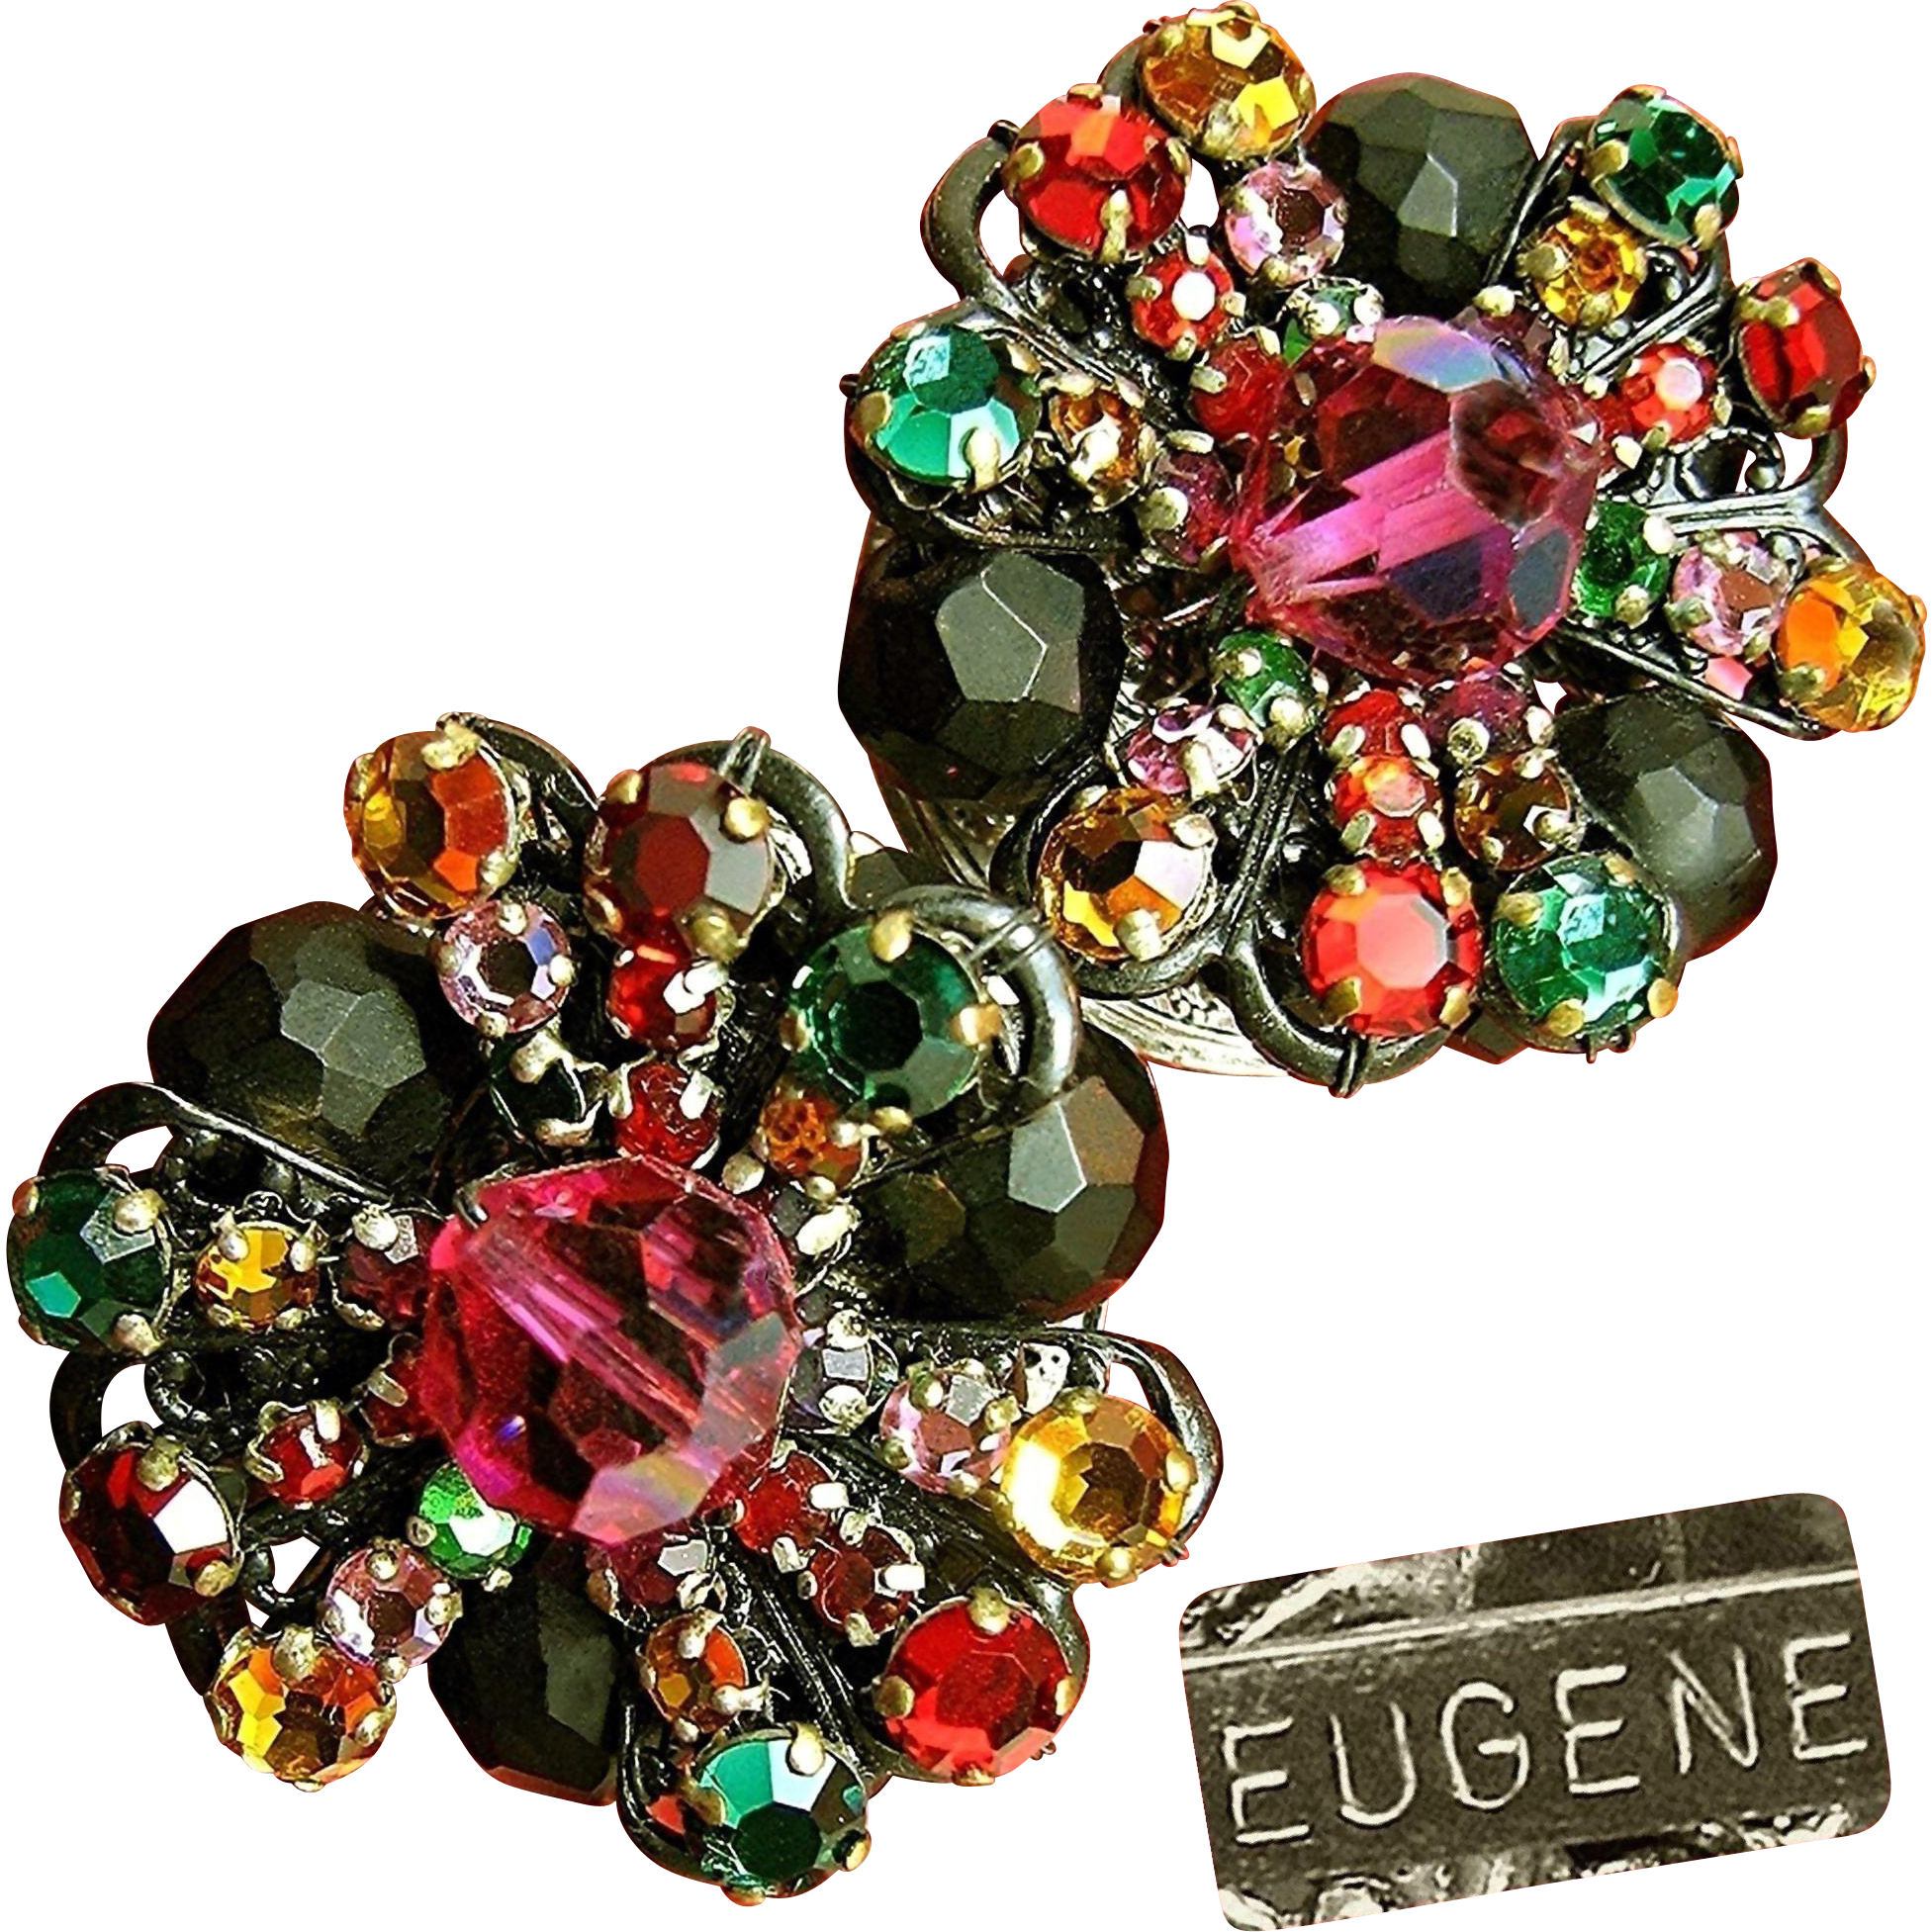 Elegant Vintage EUGENE Earrings of Rainbow Rhinestone Rose Montee w/ Faceted Black Glass c.1950's